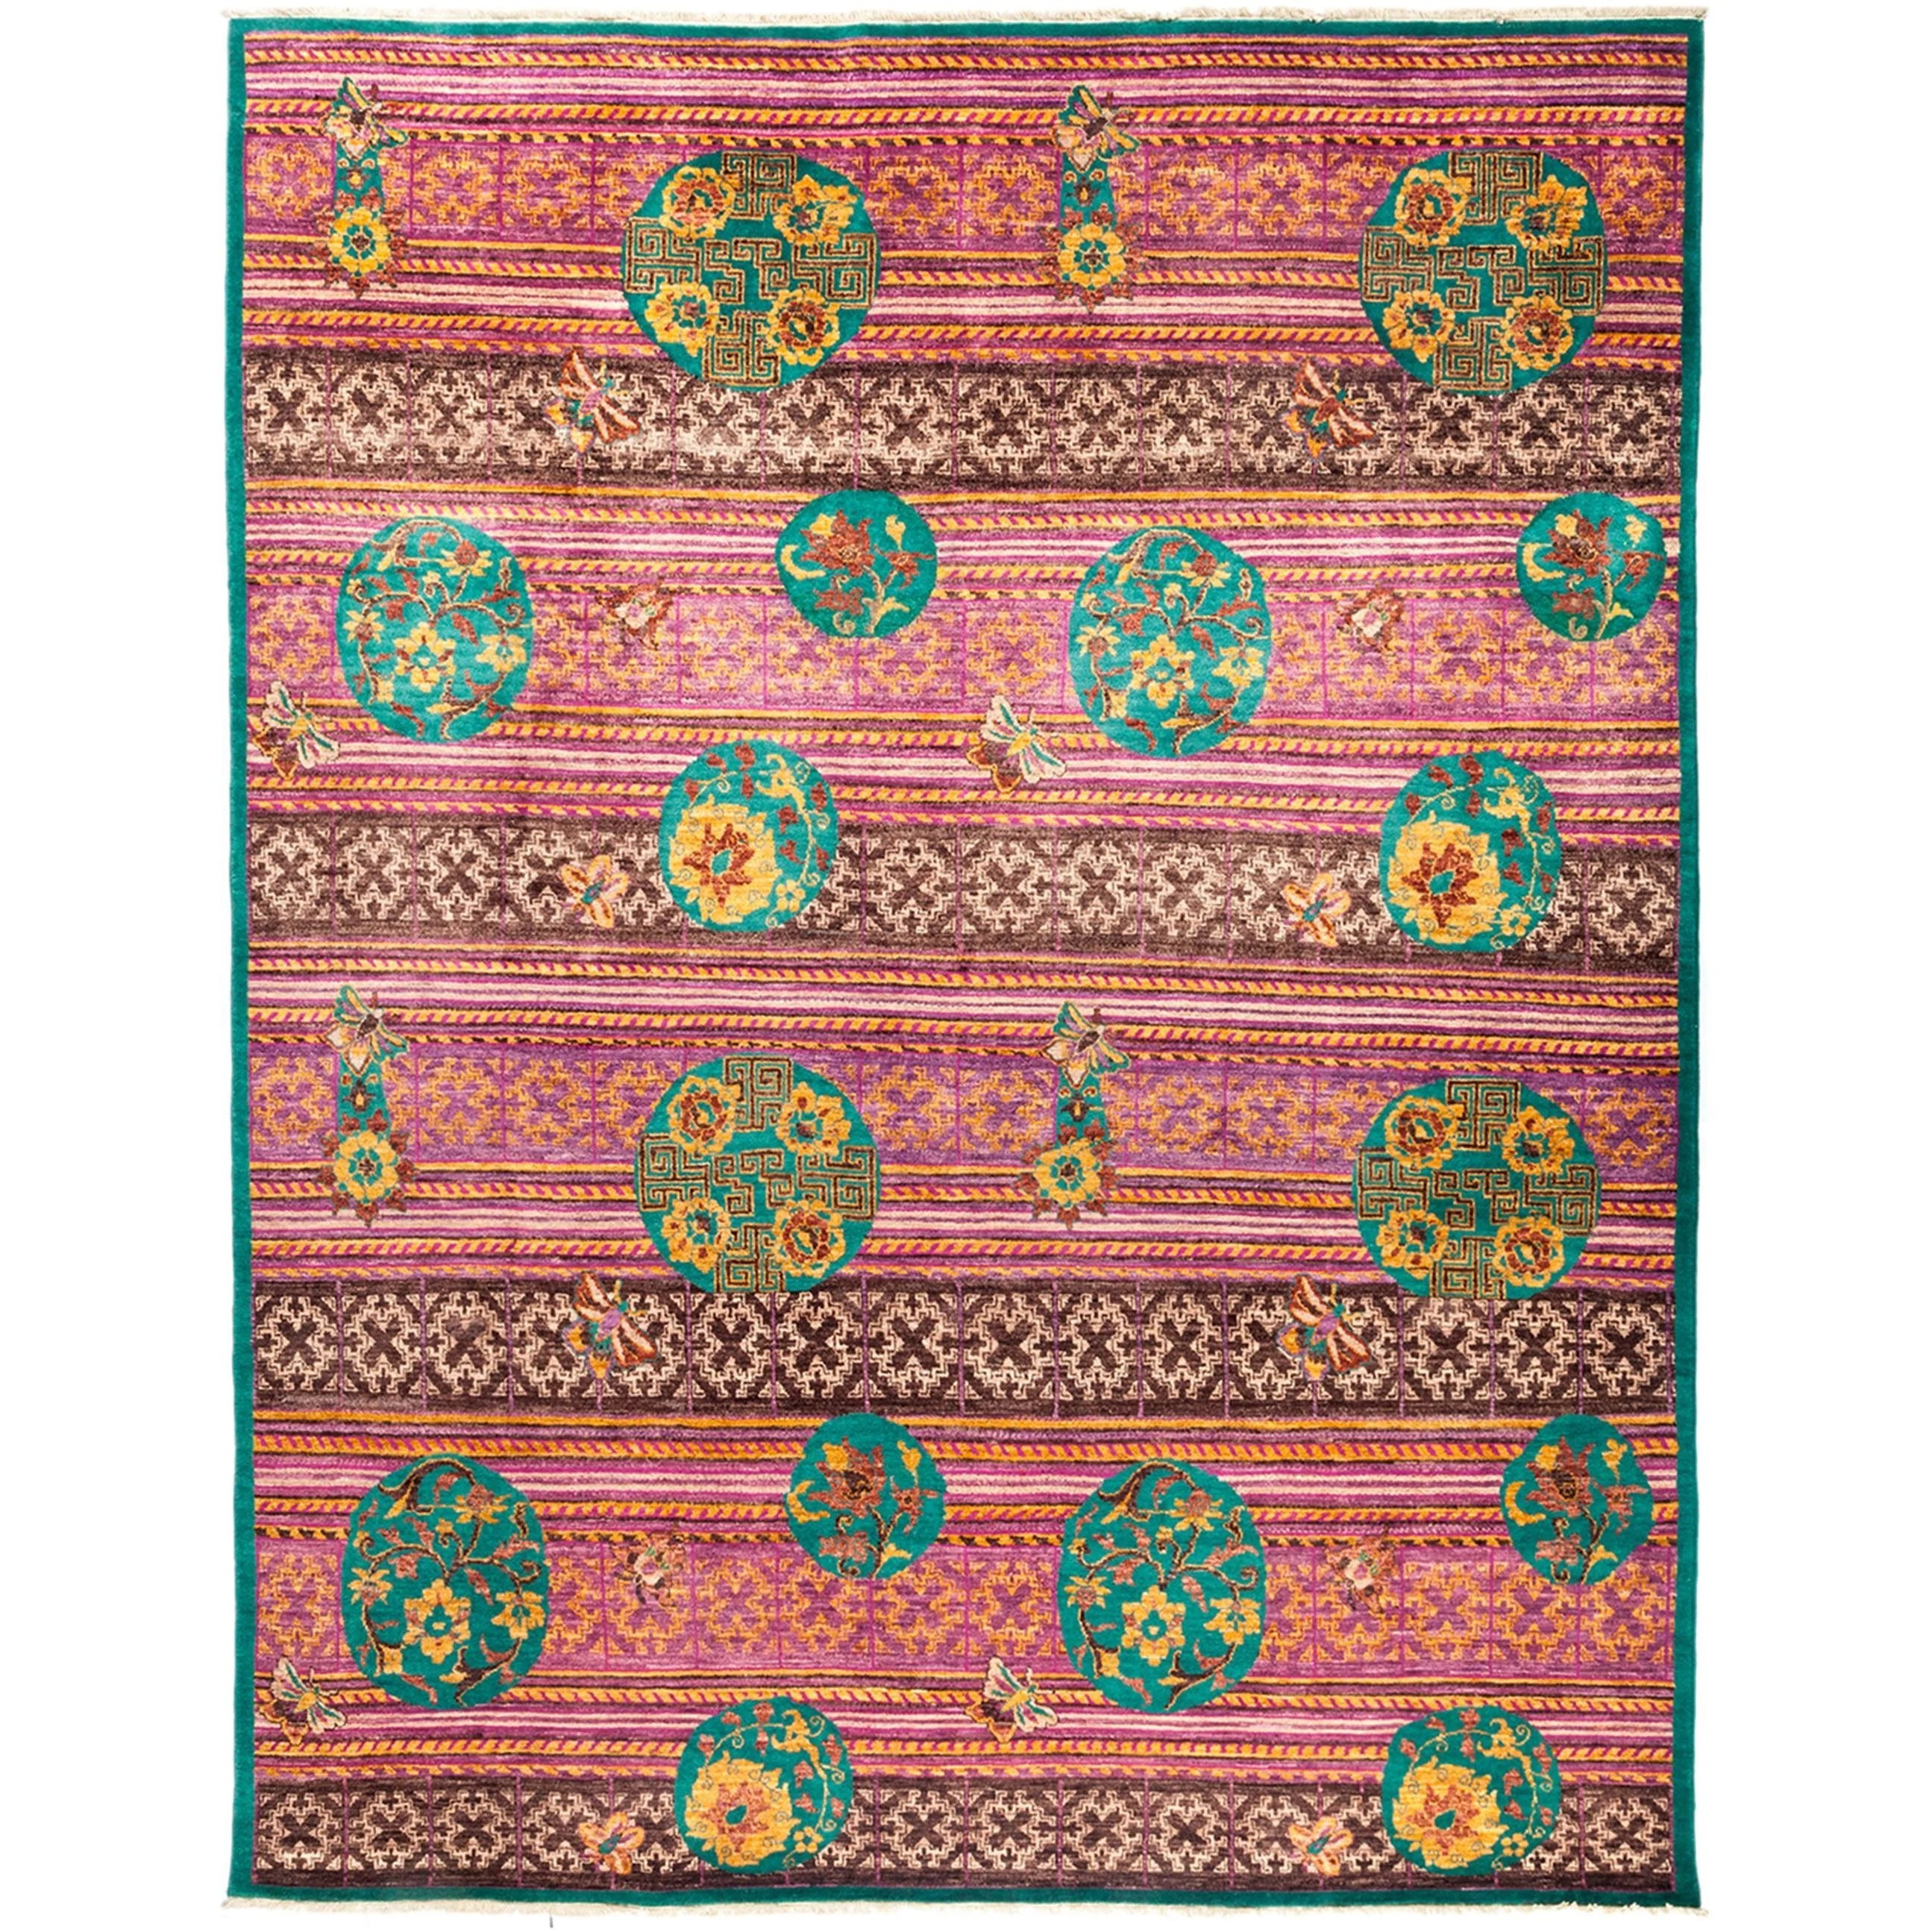 Yaden Pink Wool Hand-kKnotted Area Rug (8'1 x 10'3)